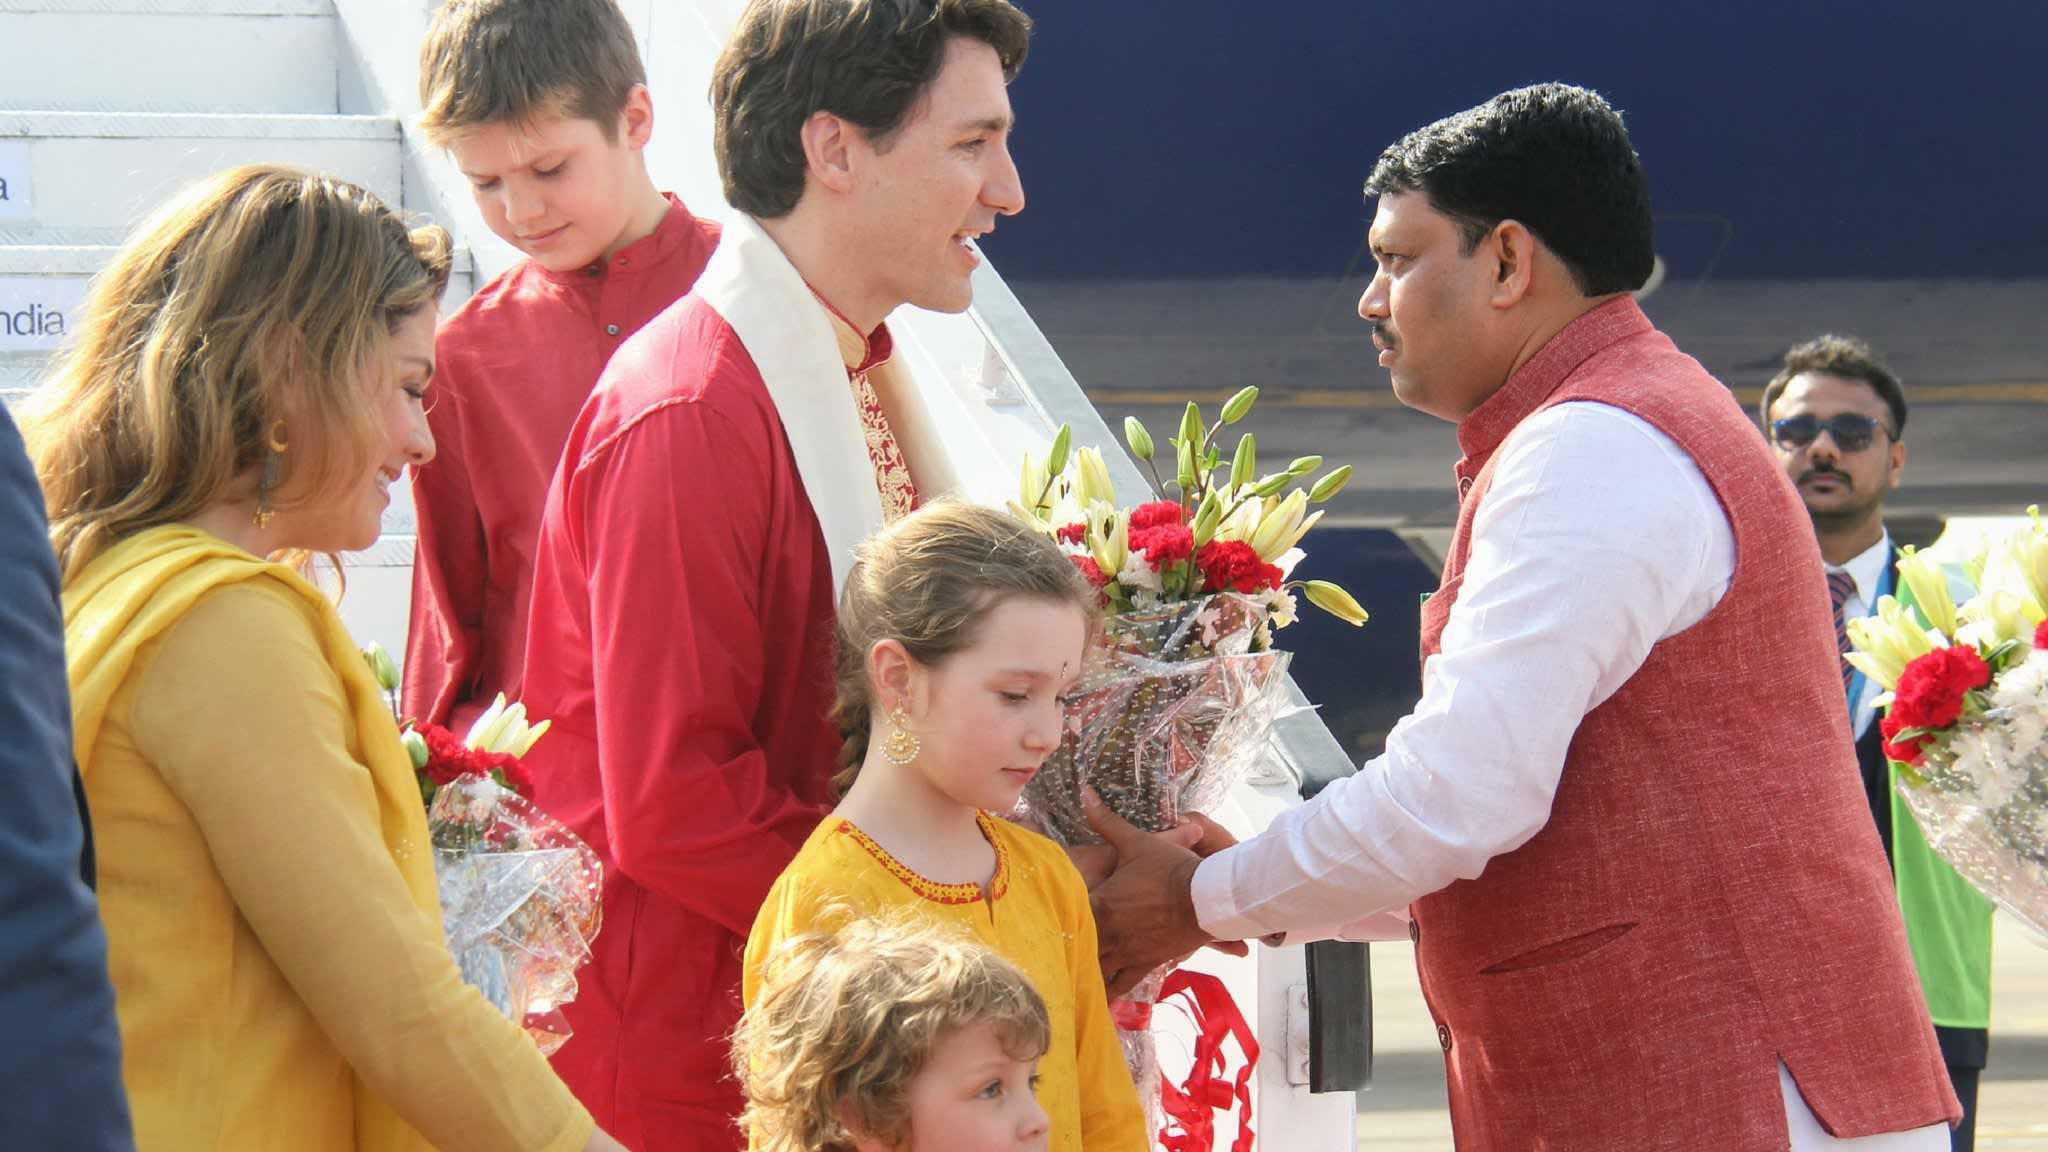 Trudeau receives cool reception from New Delhi